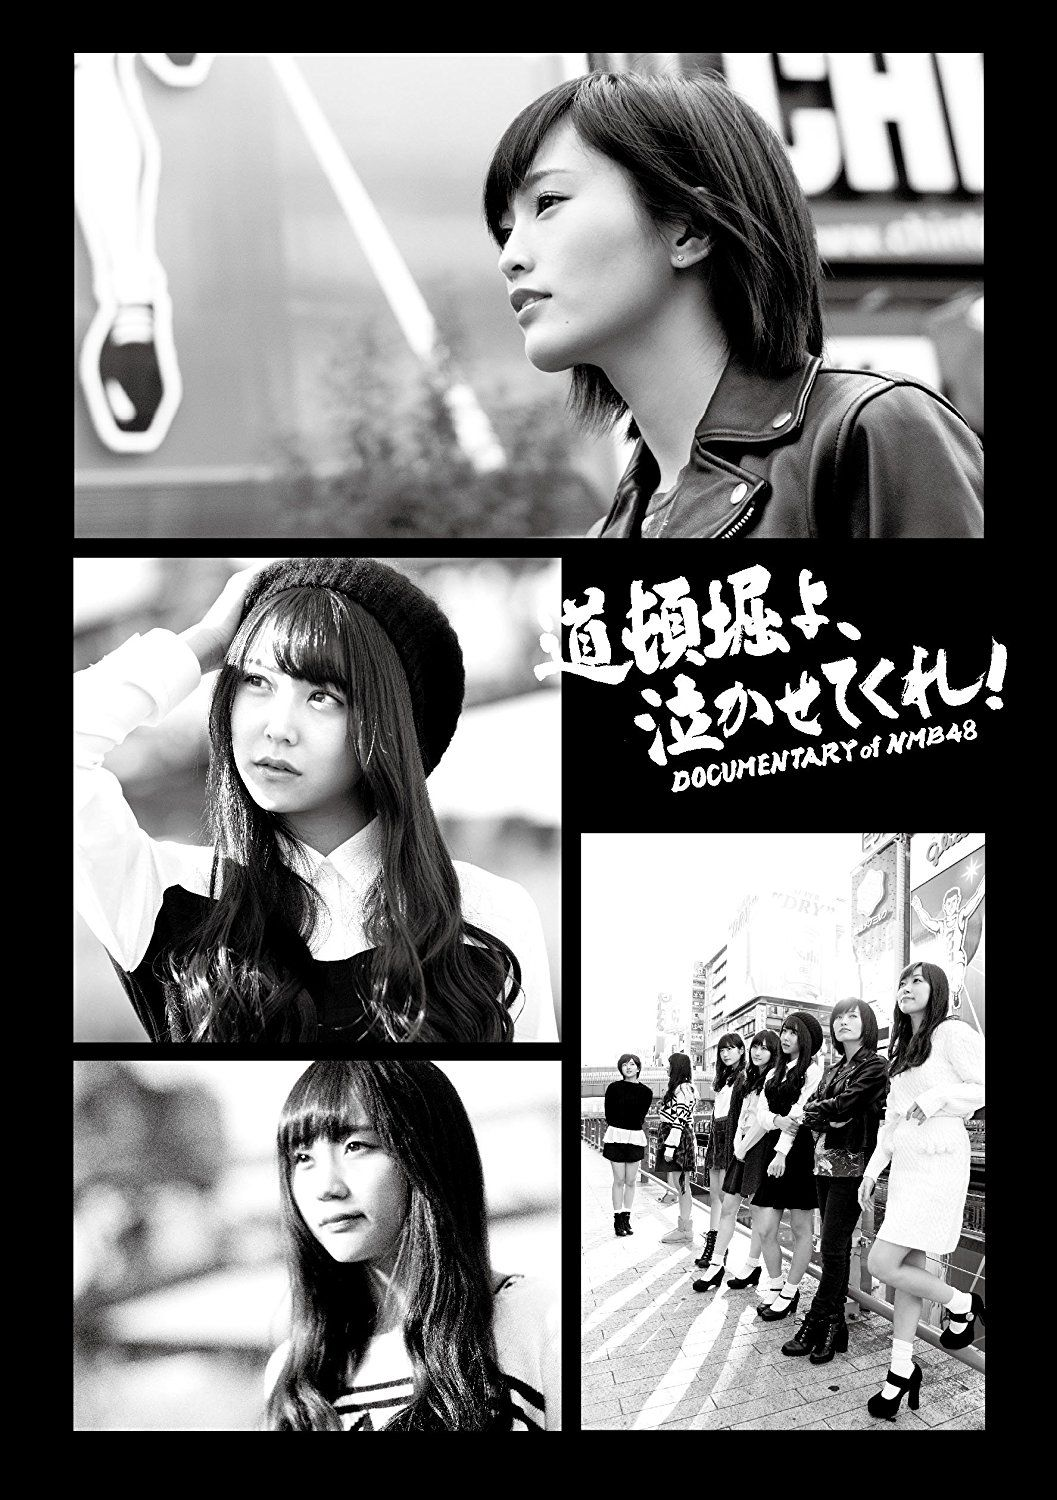 Documentary of NMB48 - Documentaire (2017)